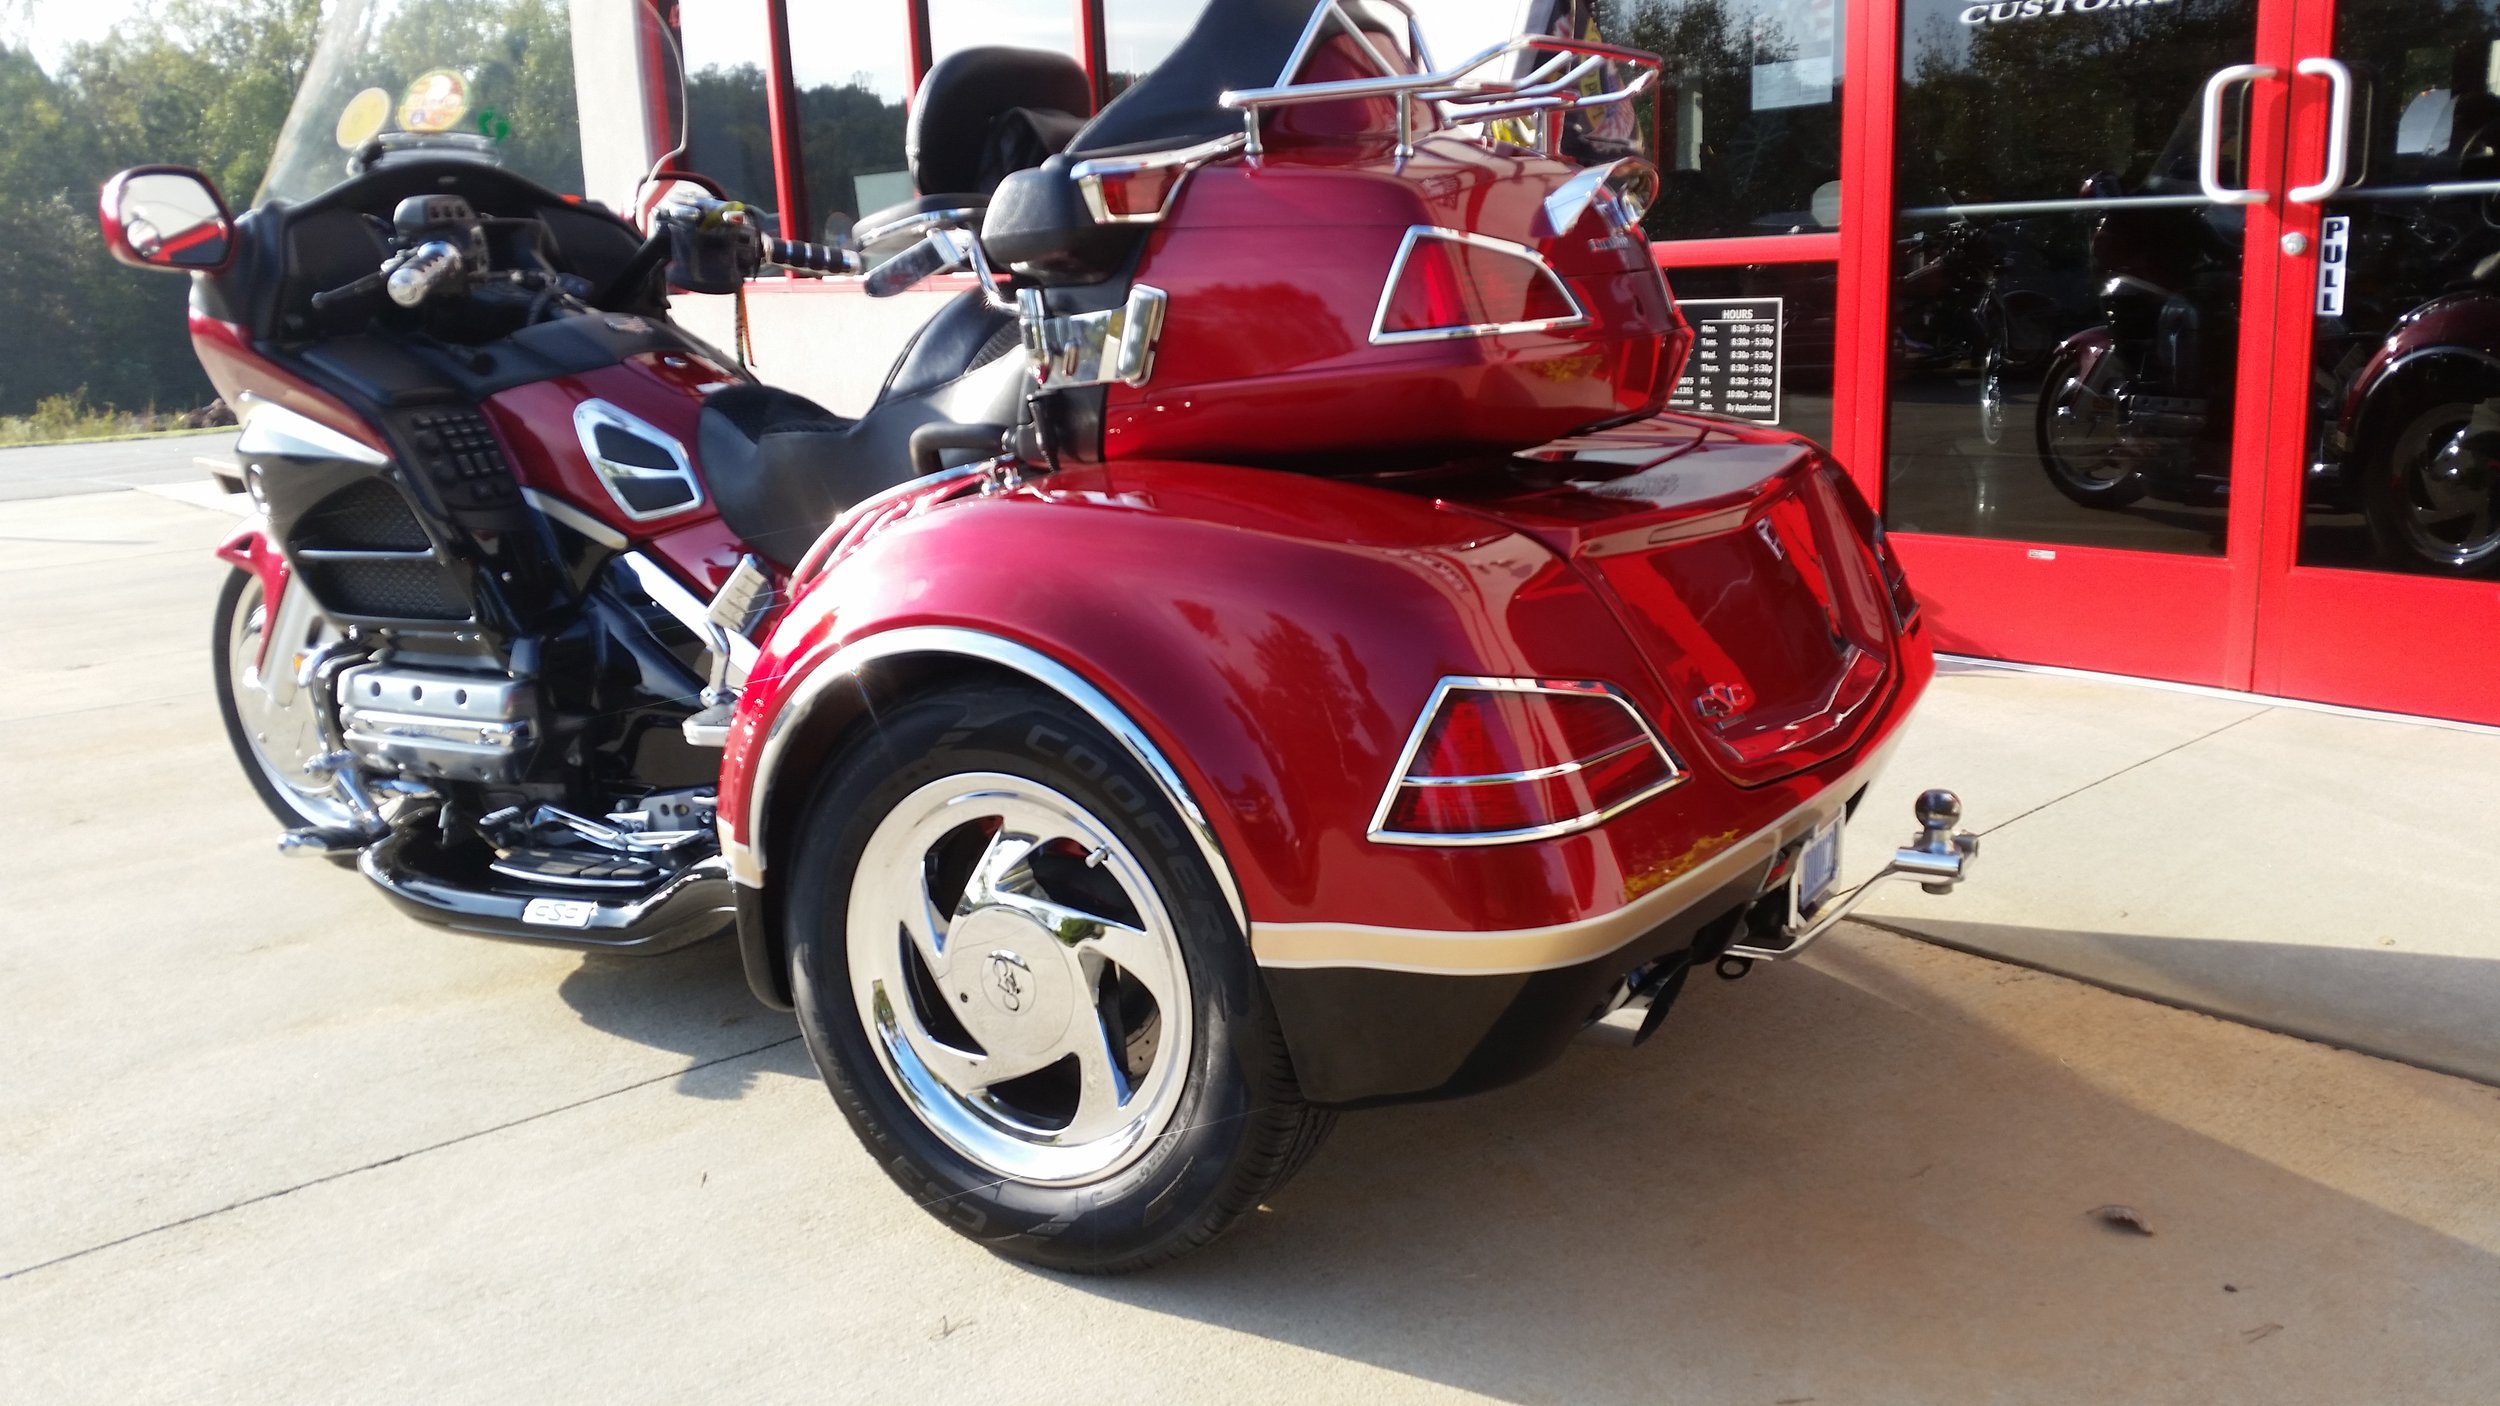 Goldwing trike repaired and painted